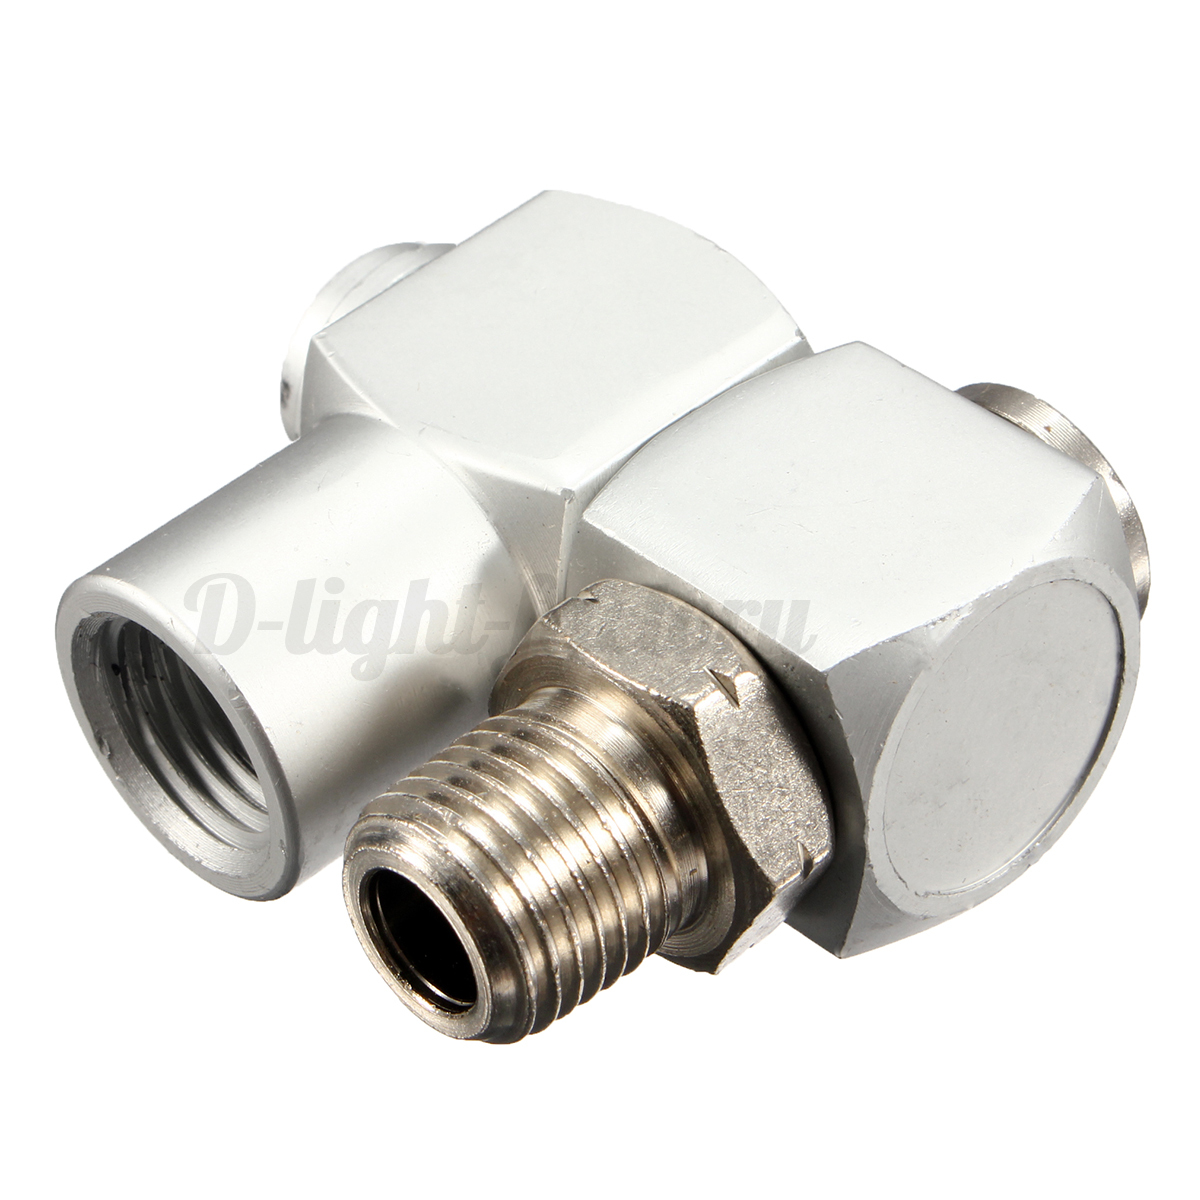 Swivel air line connector ″ bsp pneumatic fitting screw